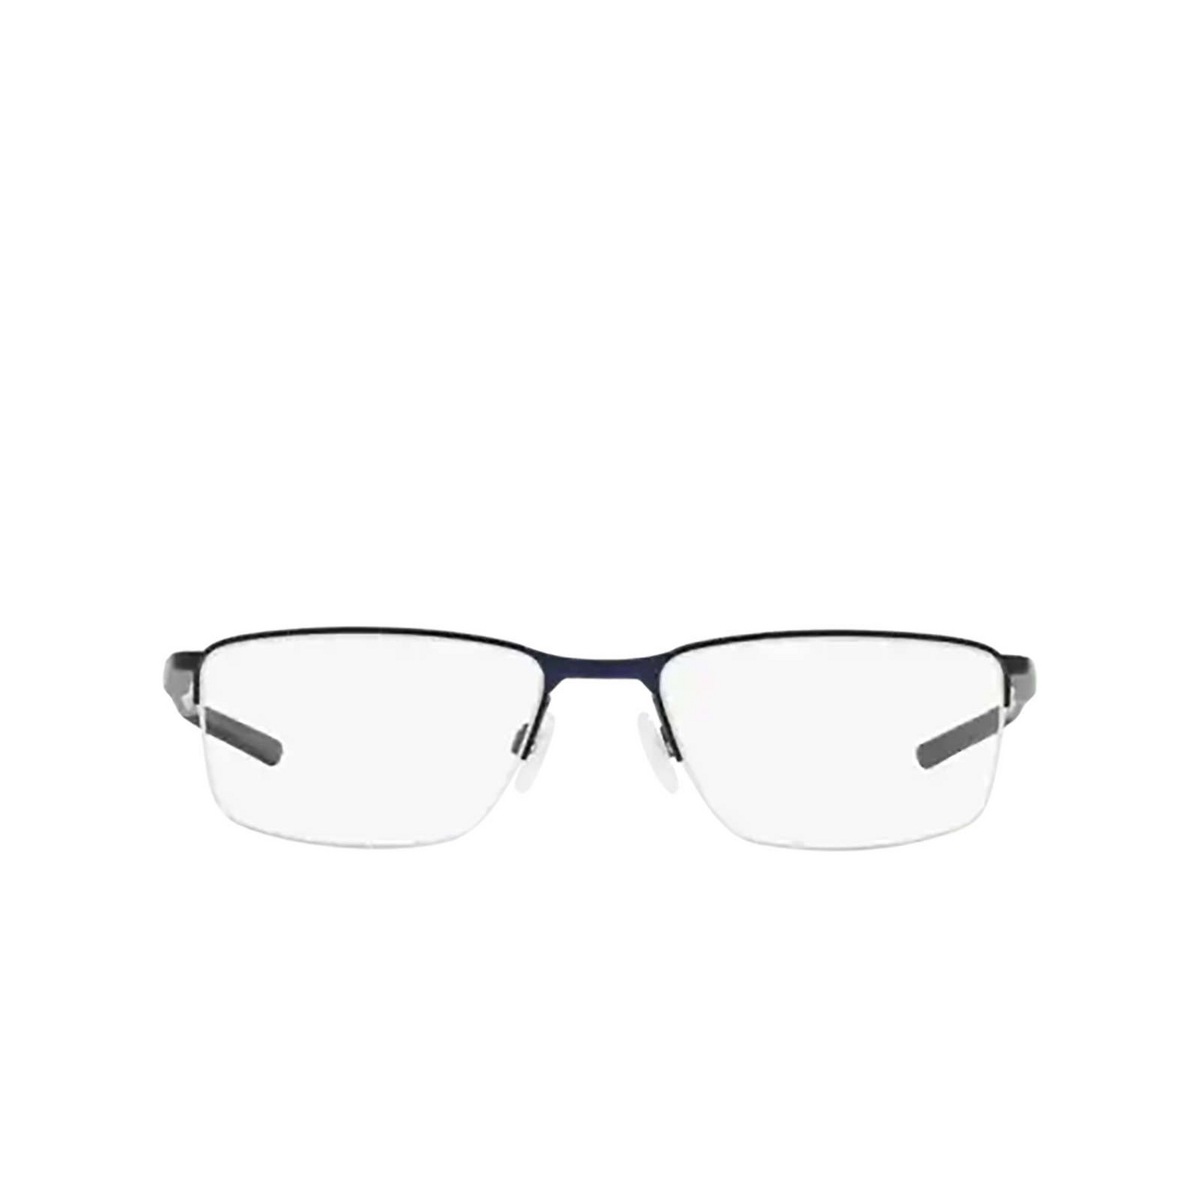 Oakley® Rectangle Eyeglasses: Socket 5.5 OX3218 color Matte Midnight 321803 - front view.